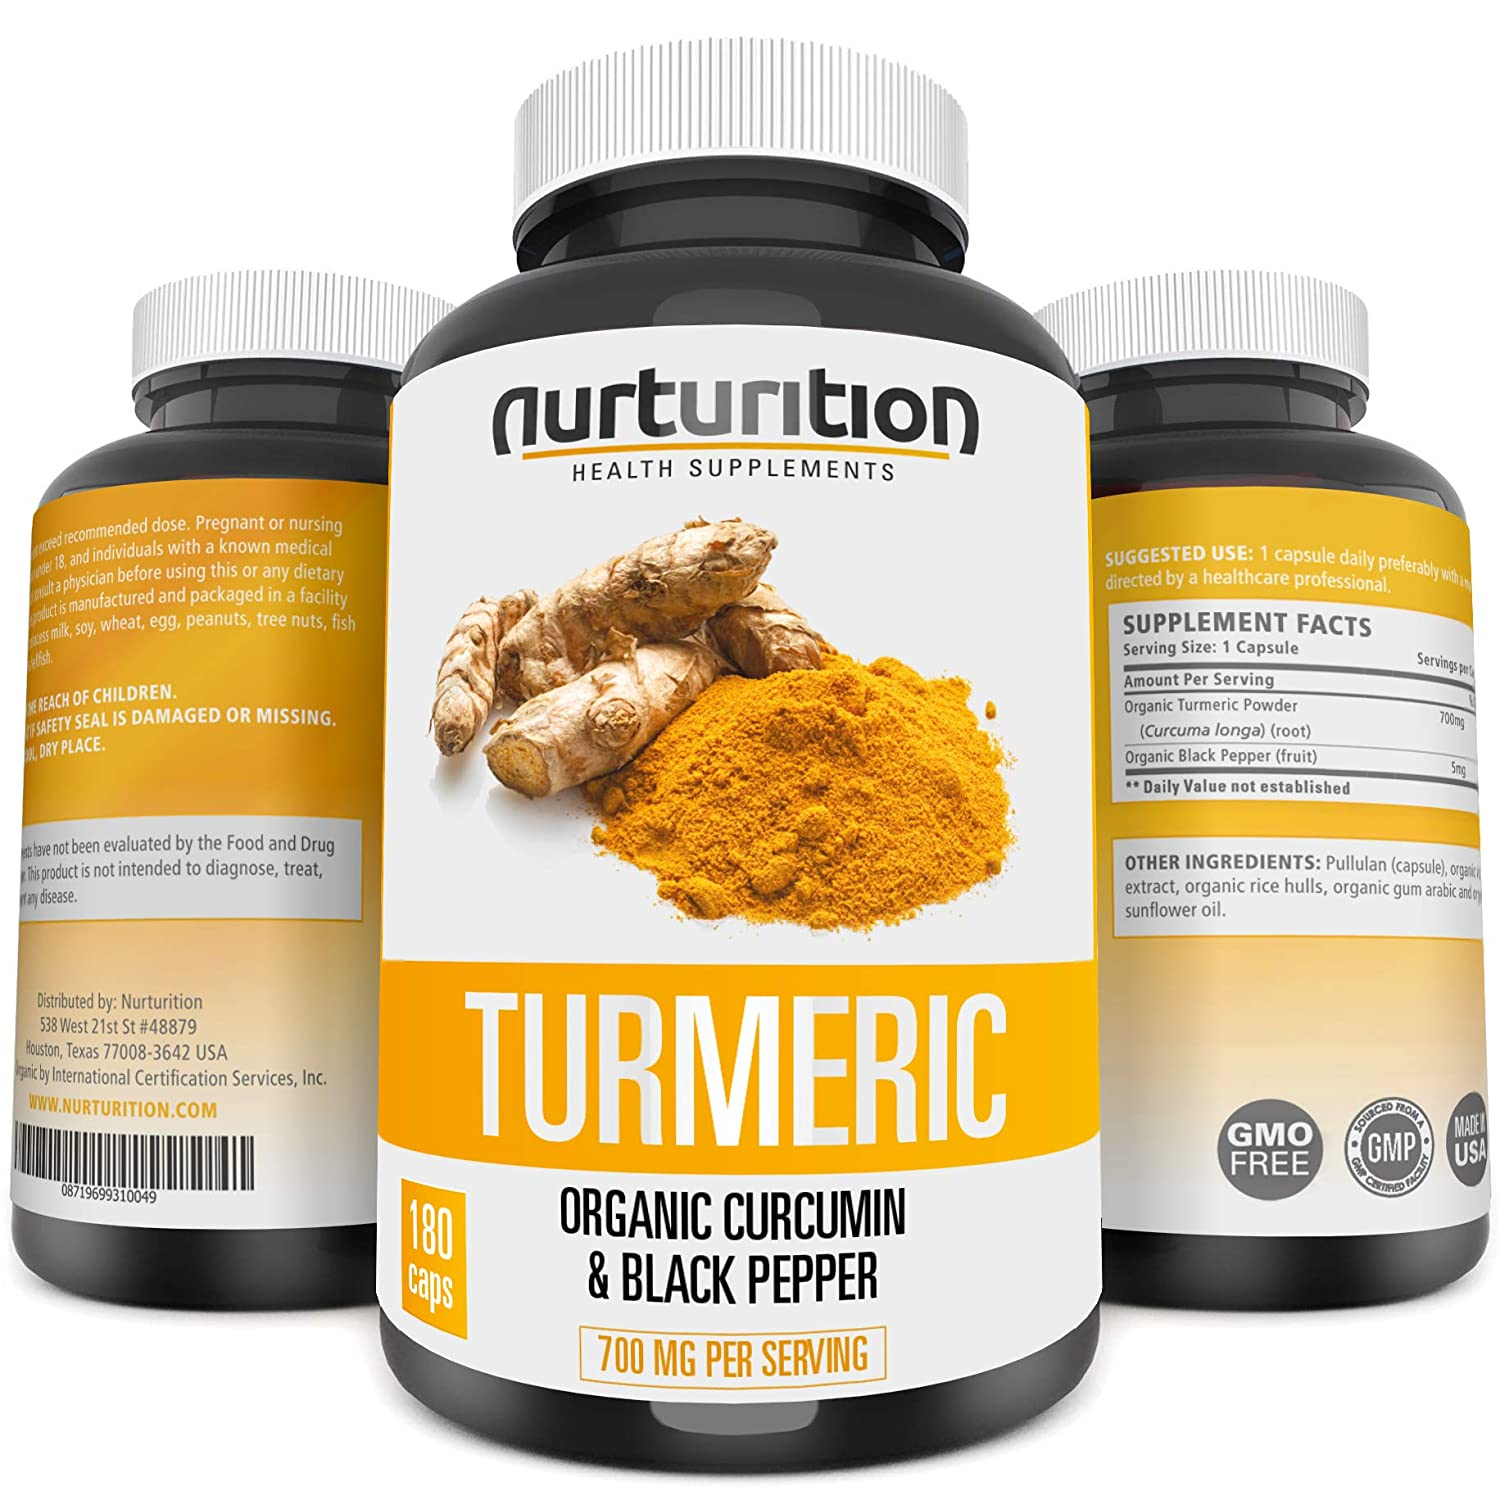 Amazon.com: Organic Turmeric Curcumin - Joint Pain Relief and Support - with Bioperine/Black Pepper Highest Absorption - Tumeric Non-GMO Supplements - High ...